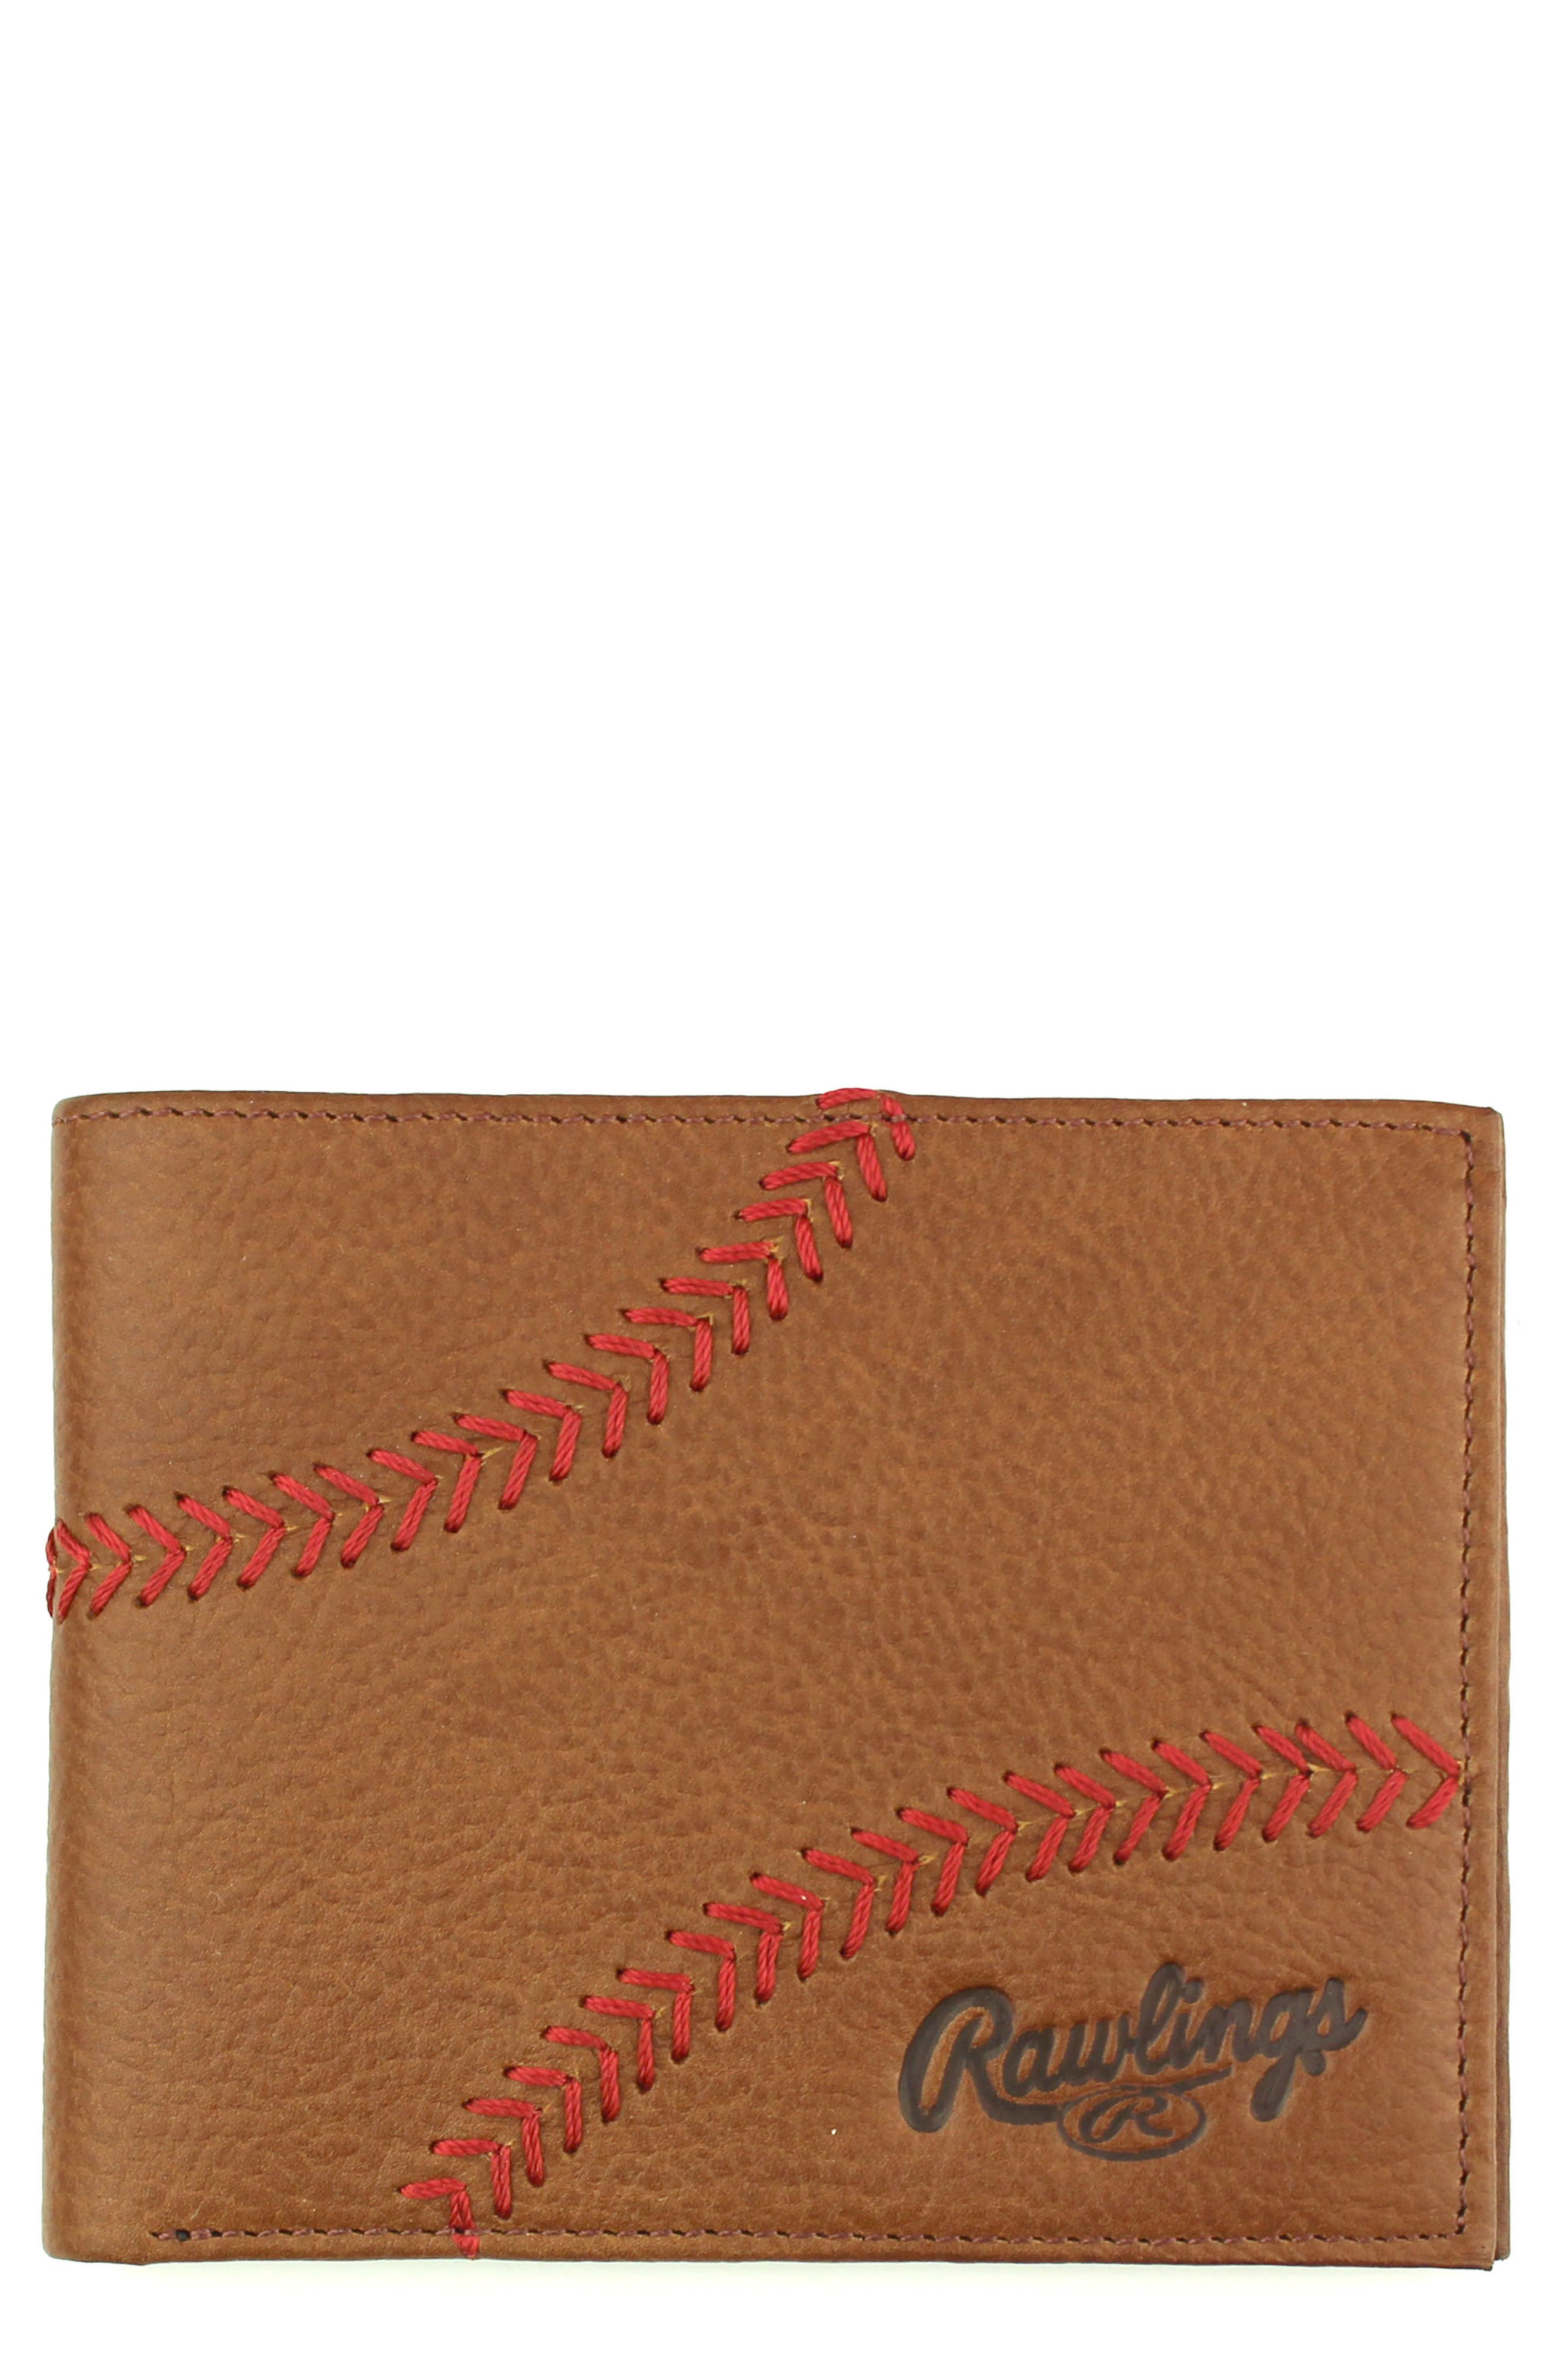 Home Run Bifold Leather Wallet,                         Main,                         color, 202